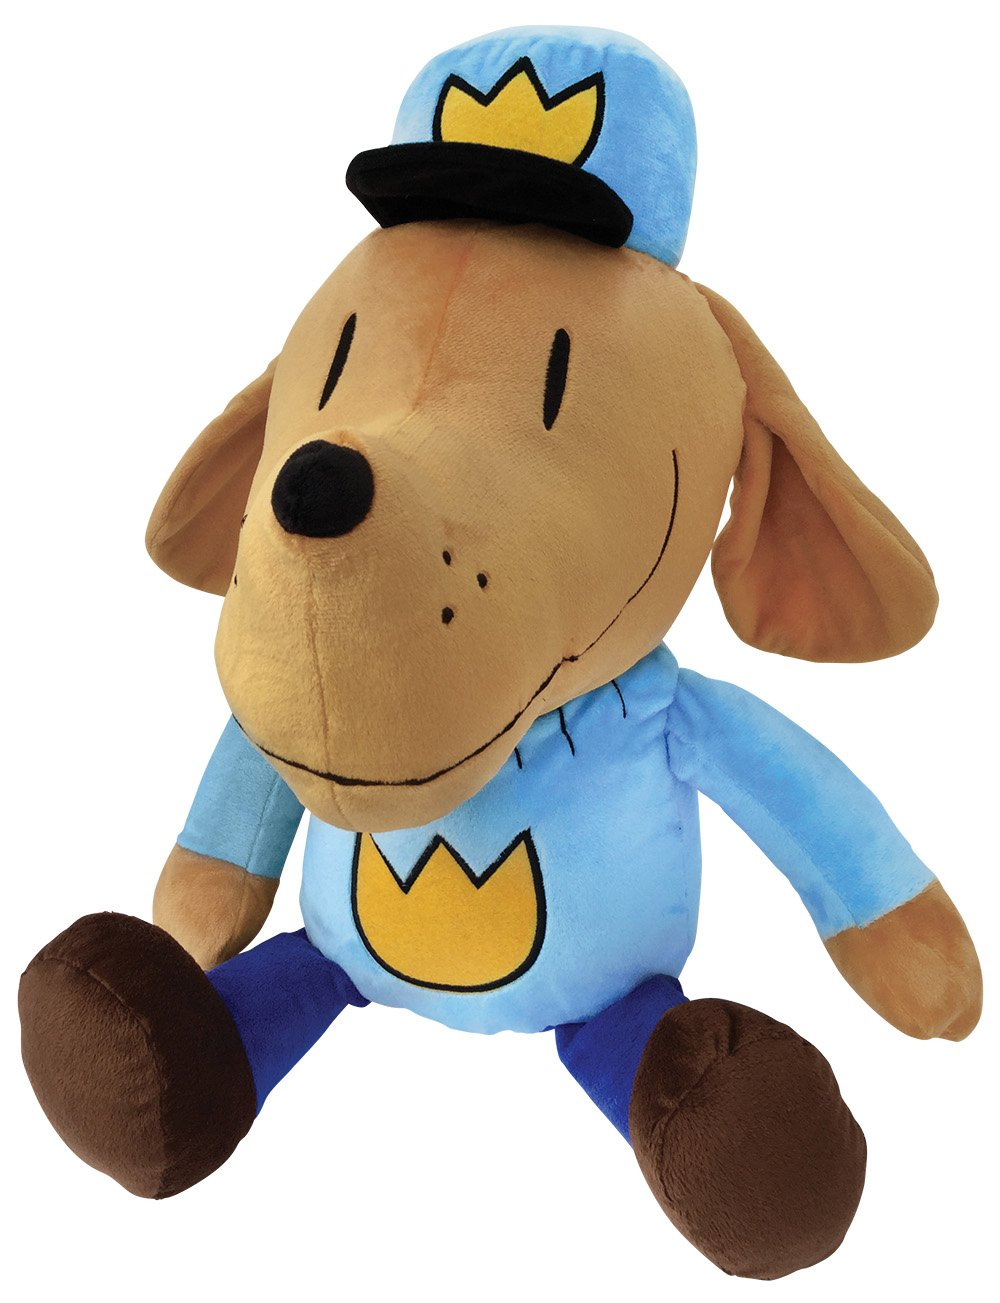 MerryMakers Dog Man Plush Toy, 9.5-Inch Dav Pilkey 1810 Toys Dolls & Puppets